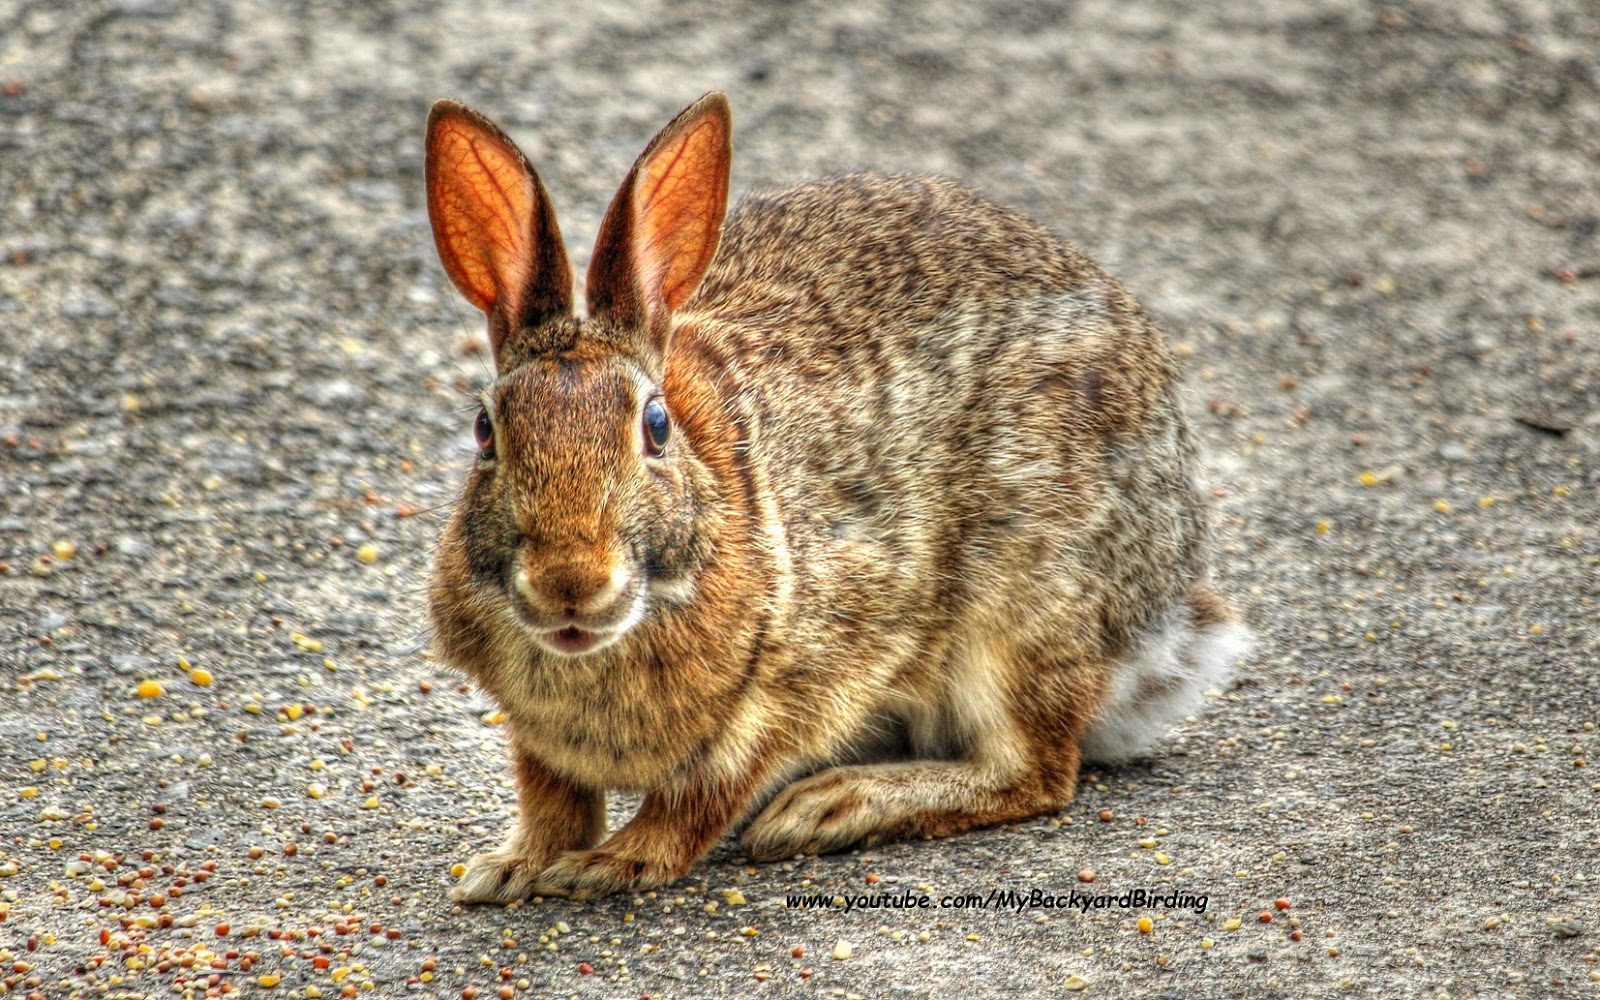 backyard birding and nature eastern cottontail rabbit great